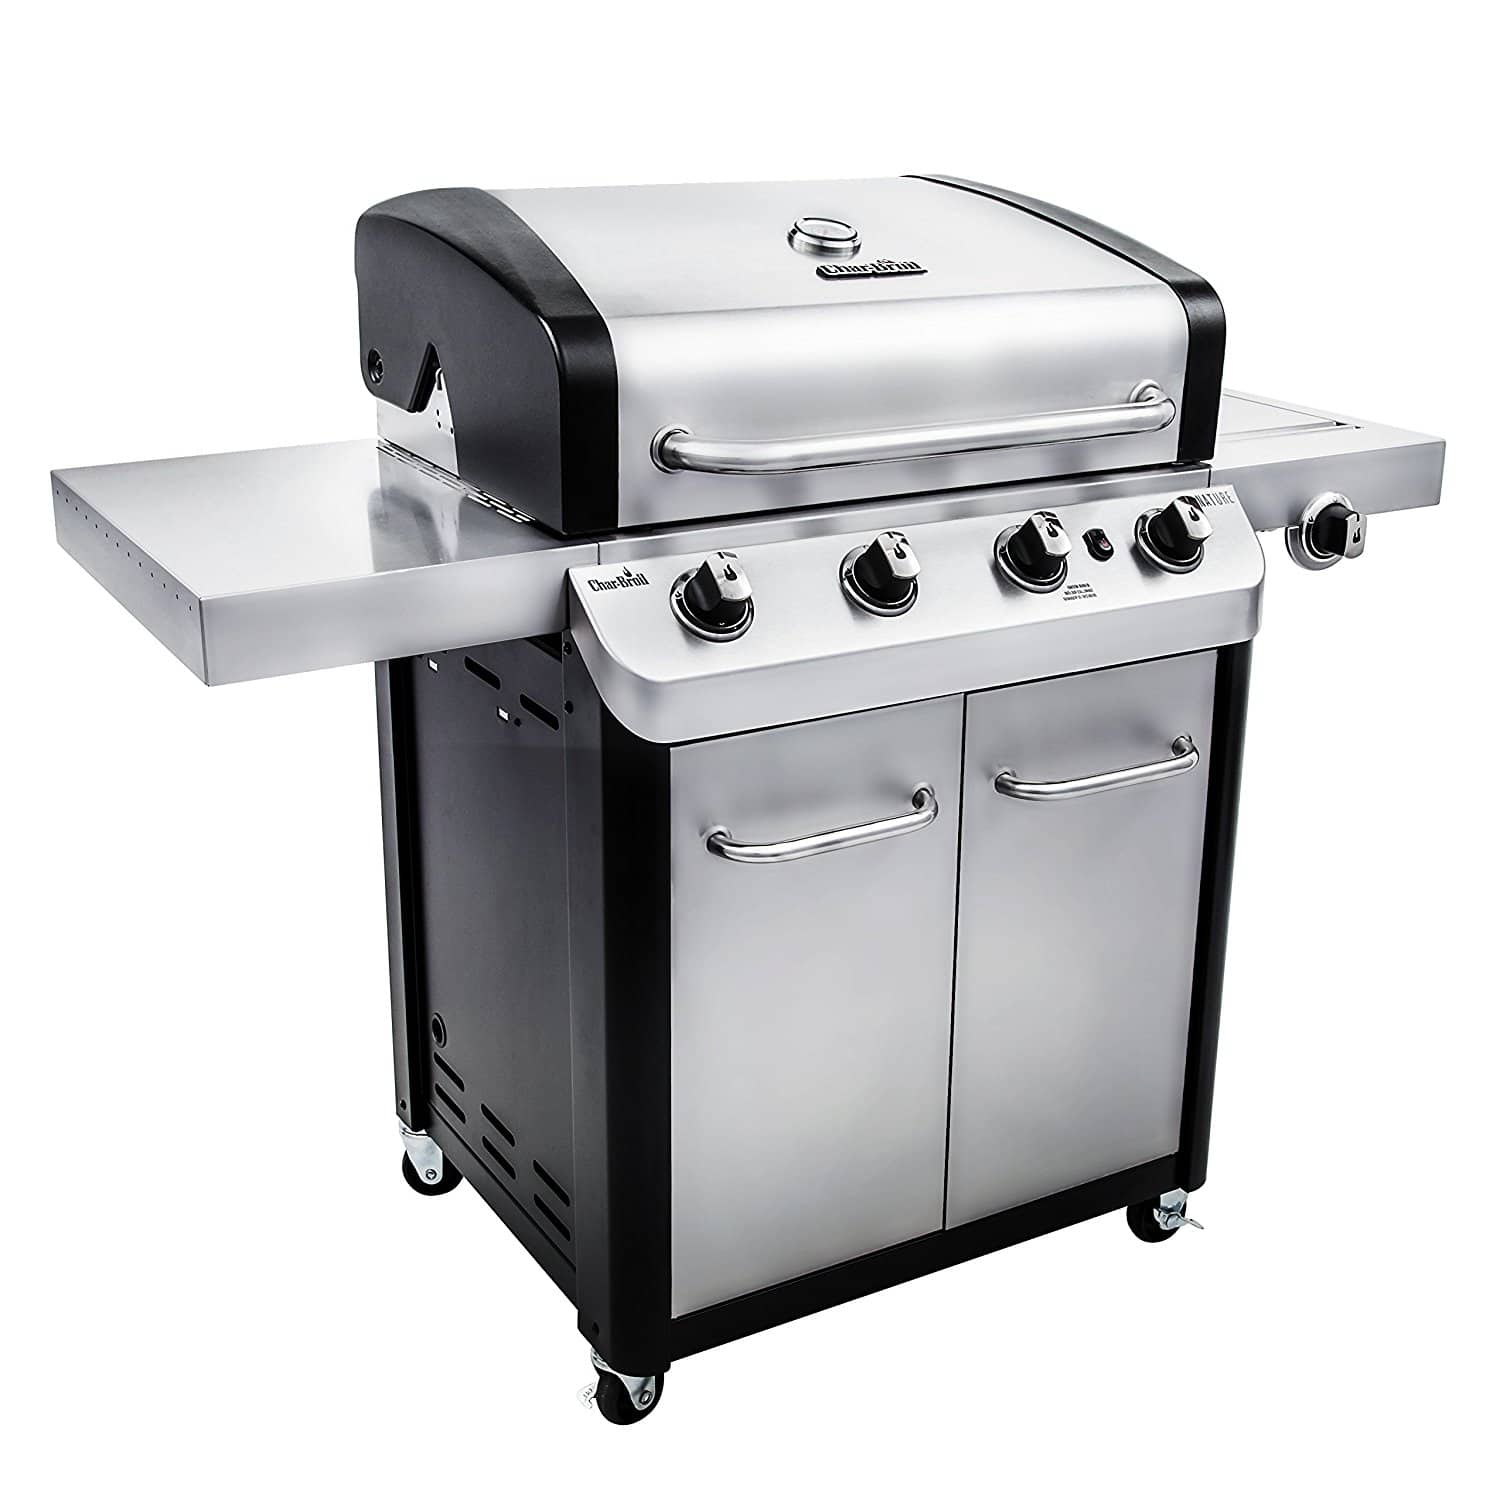 char broil signature 530 4 burner cabinet gas grill the grilling life. Black Bedroom Furniture Sets. Home Design Ideas